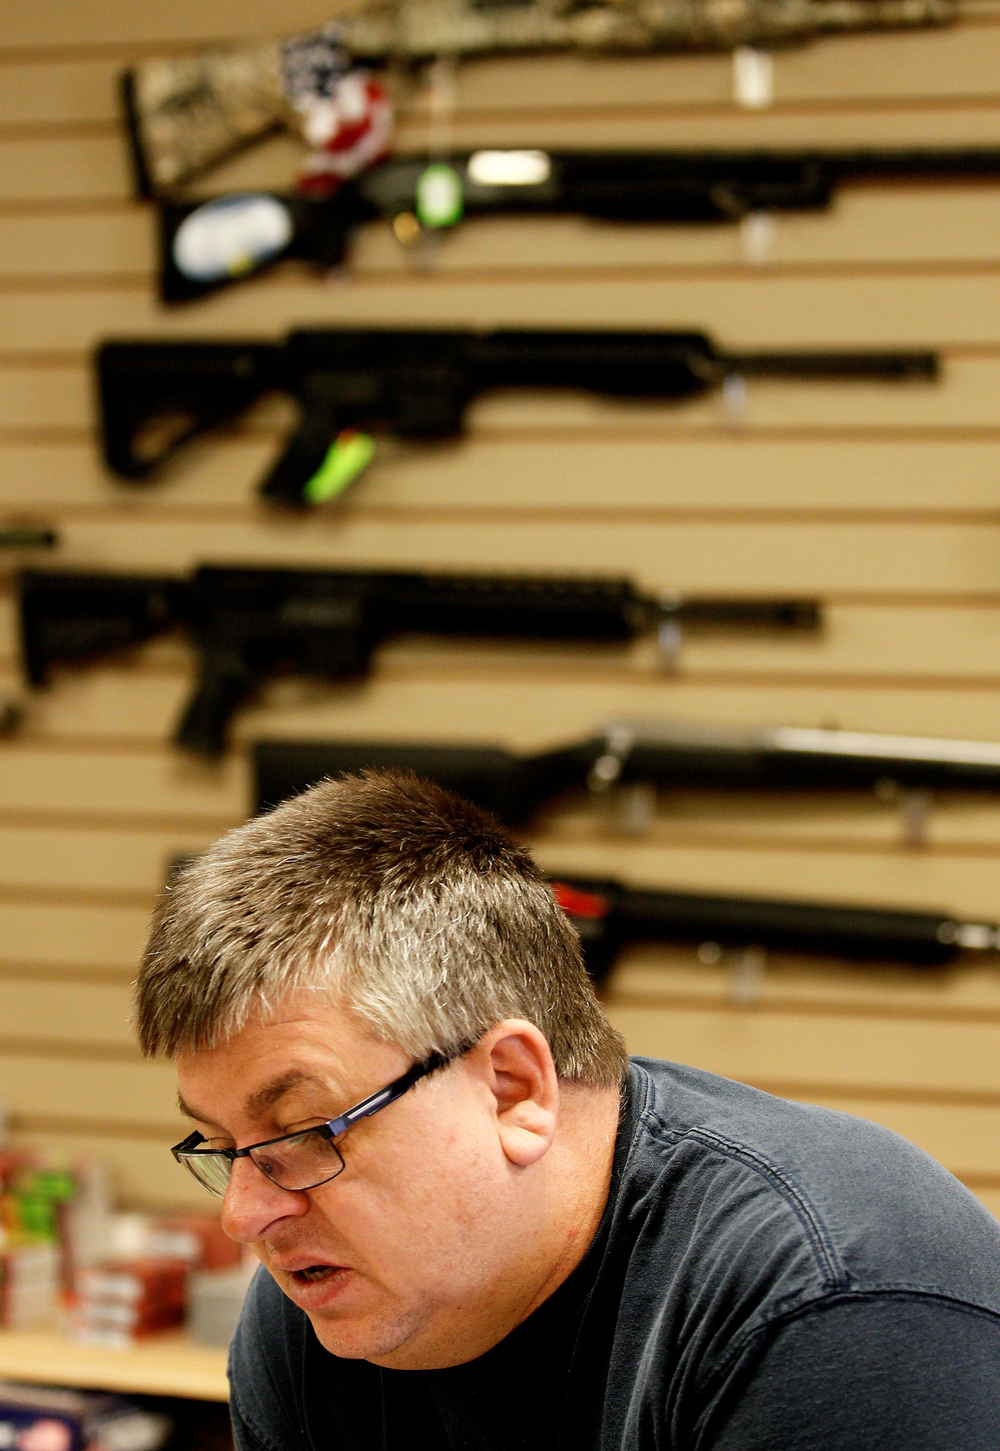 Brickyard Carry Out & Drive Thru and gun store owner Matt Dixon has been selling guns and ammunition for eight years in Gouster, Ohio.